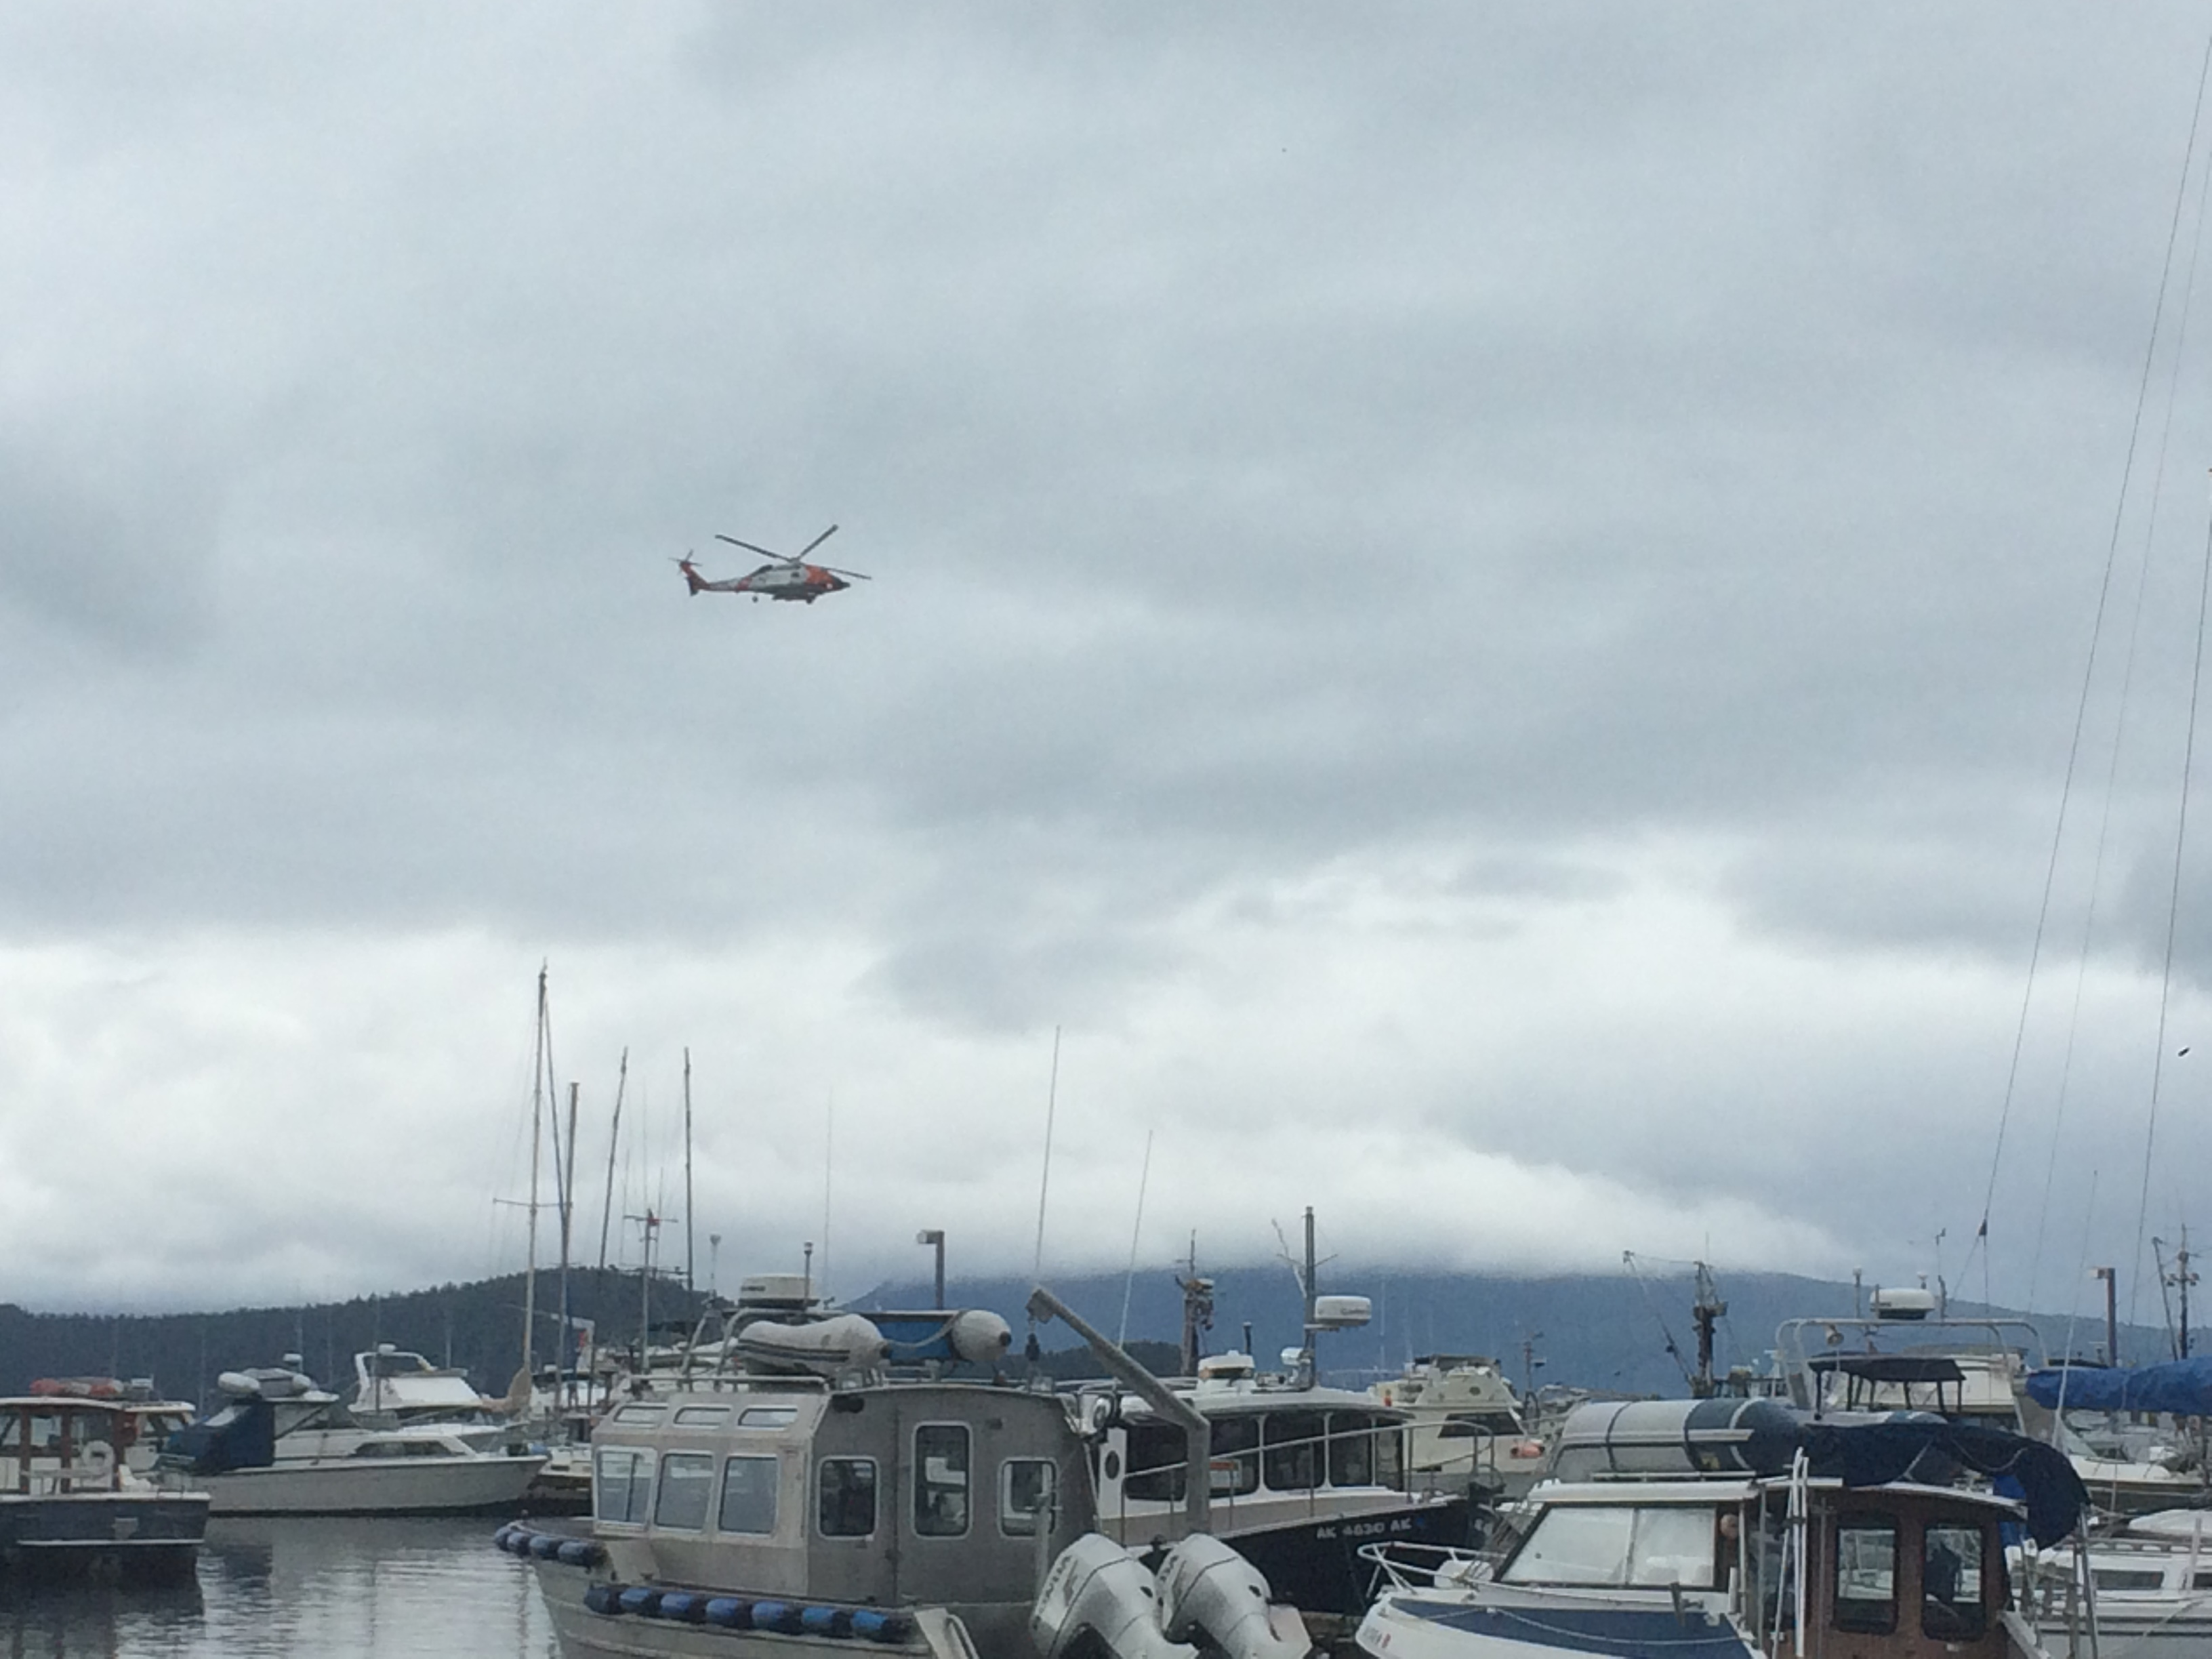 USCG helicopter flying near Don D. Statter Harbor in Auke Bay on Sunday, Aug. 14, 2016. (Photo by Quinton Chandler/KTOO)